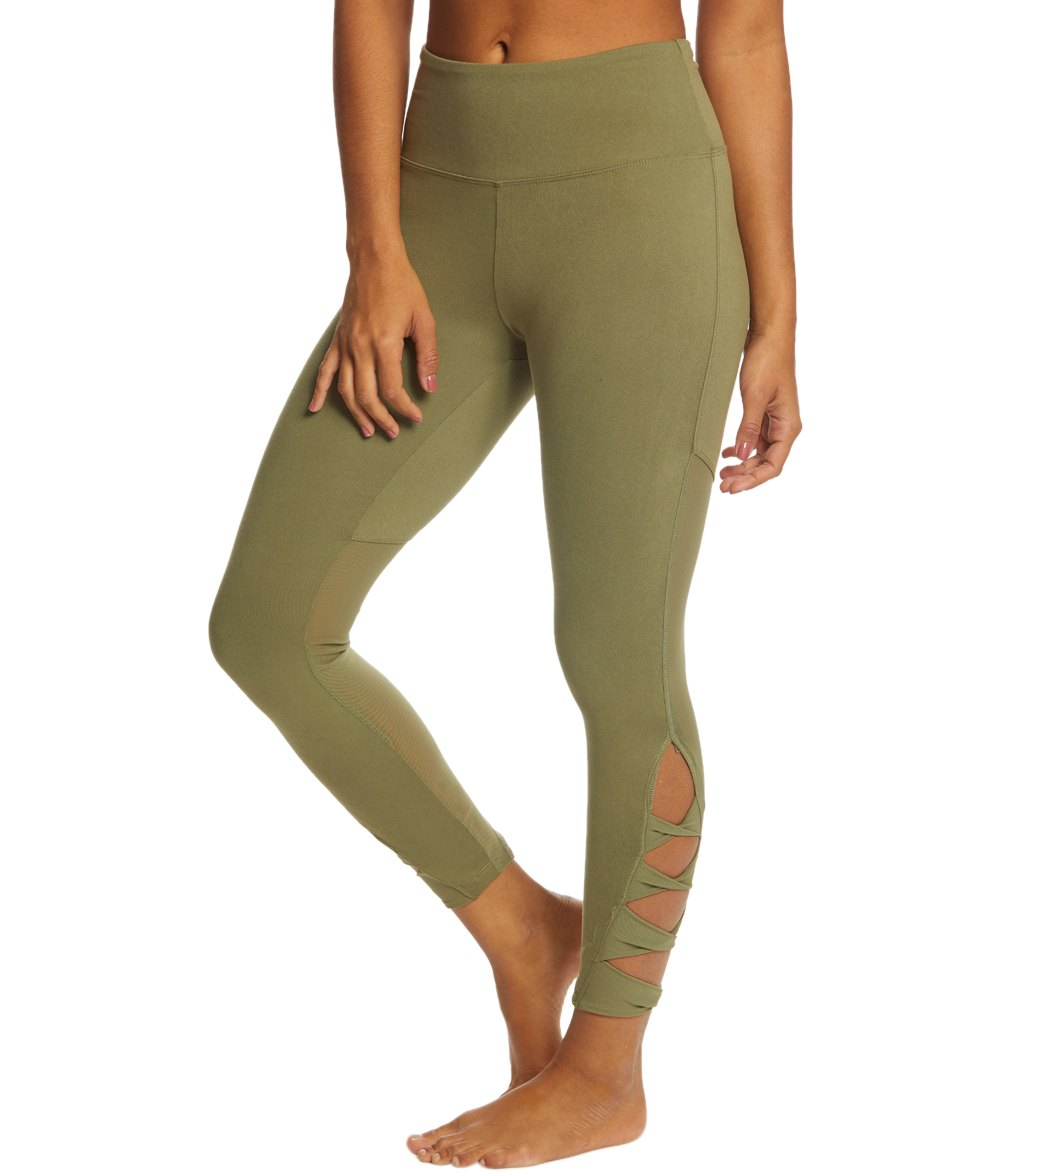 bdc60f37f492d6 Balance Collection Devon 7/8 Yoga Leggings